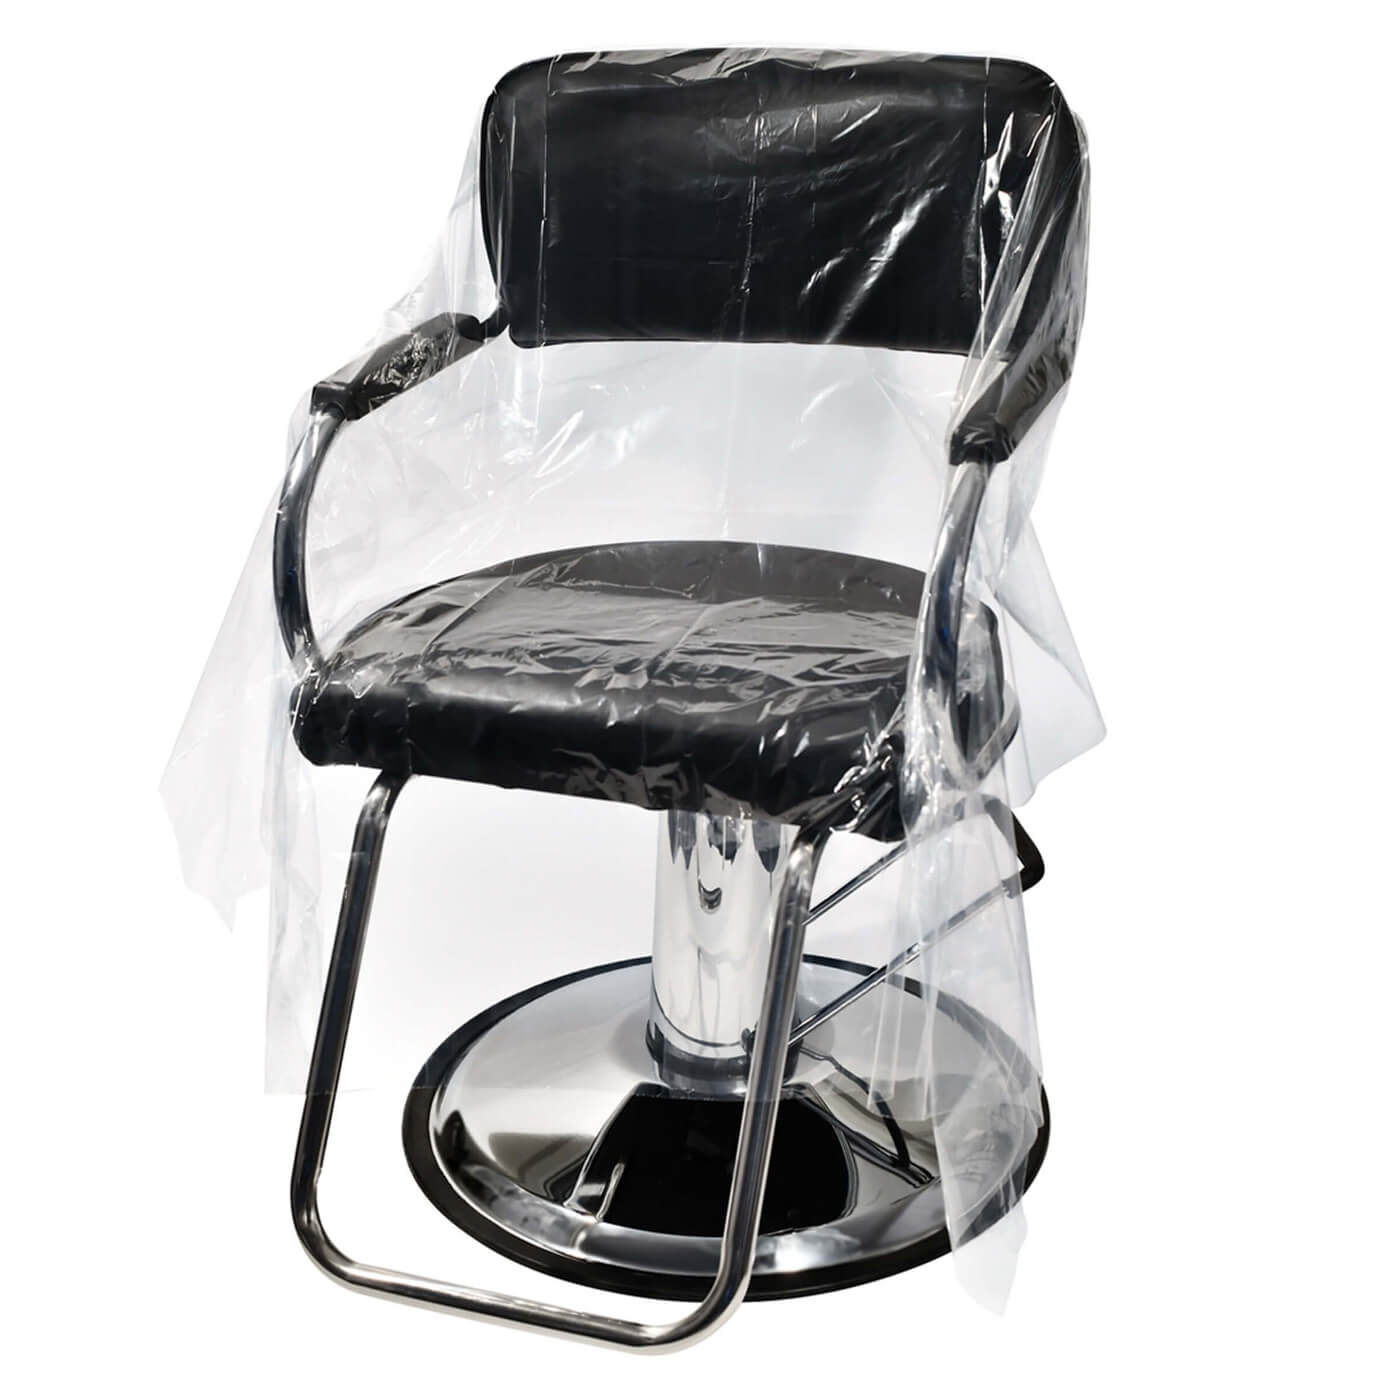 DCC-ROLL-a-salon-chair-covers-disposable-l.jpg